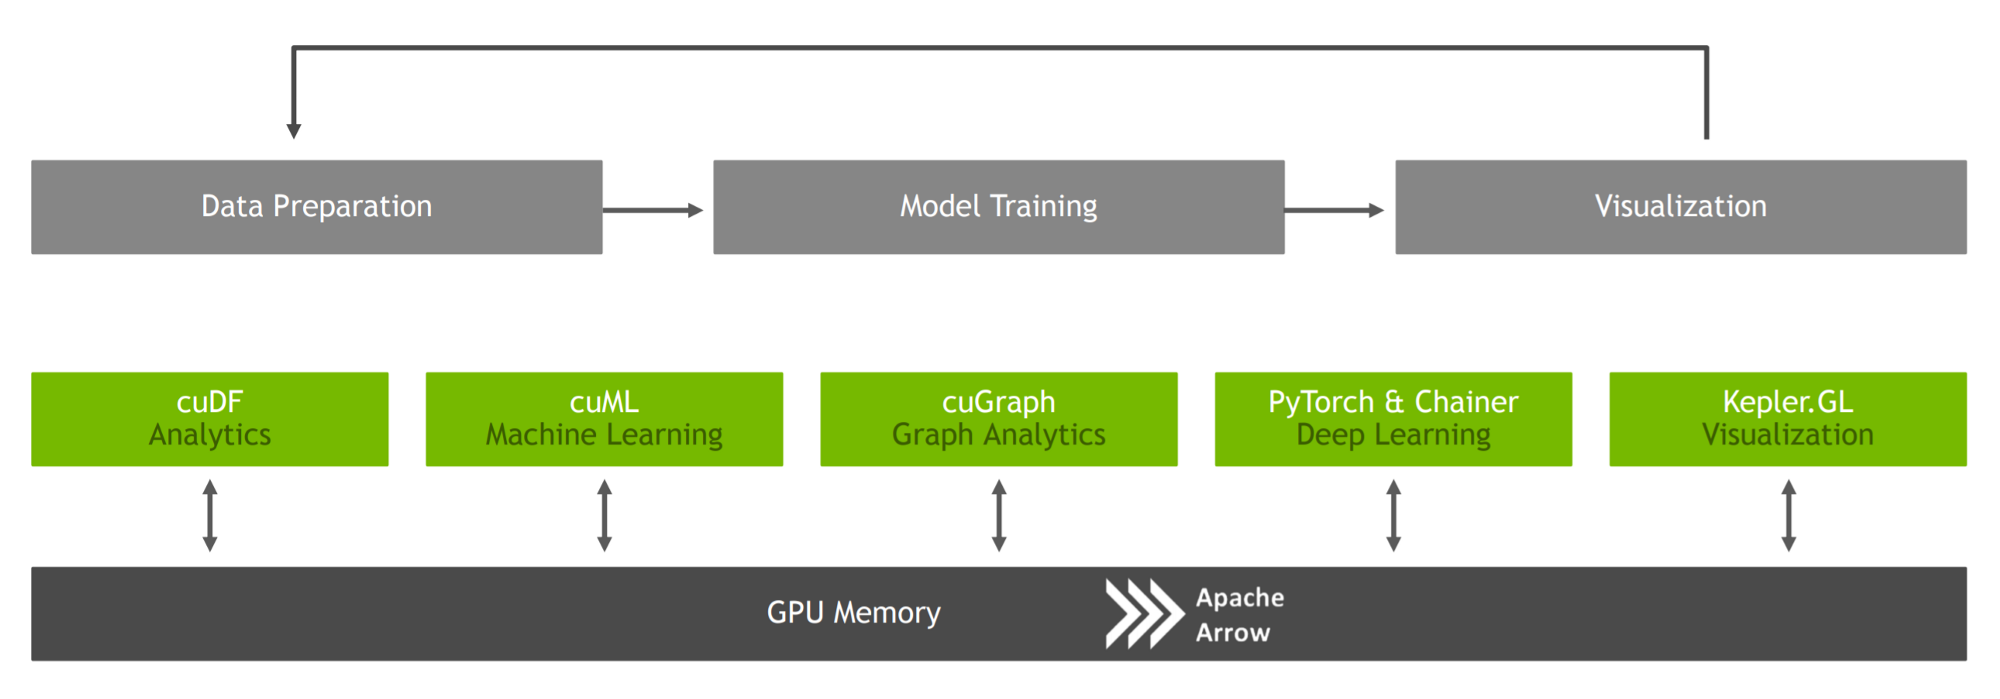 GPU Accelerated Data Analytics & Machine Learning - Towards Data Science